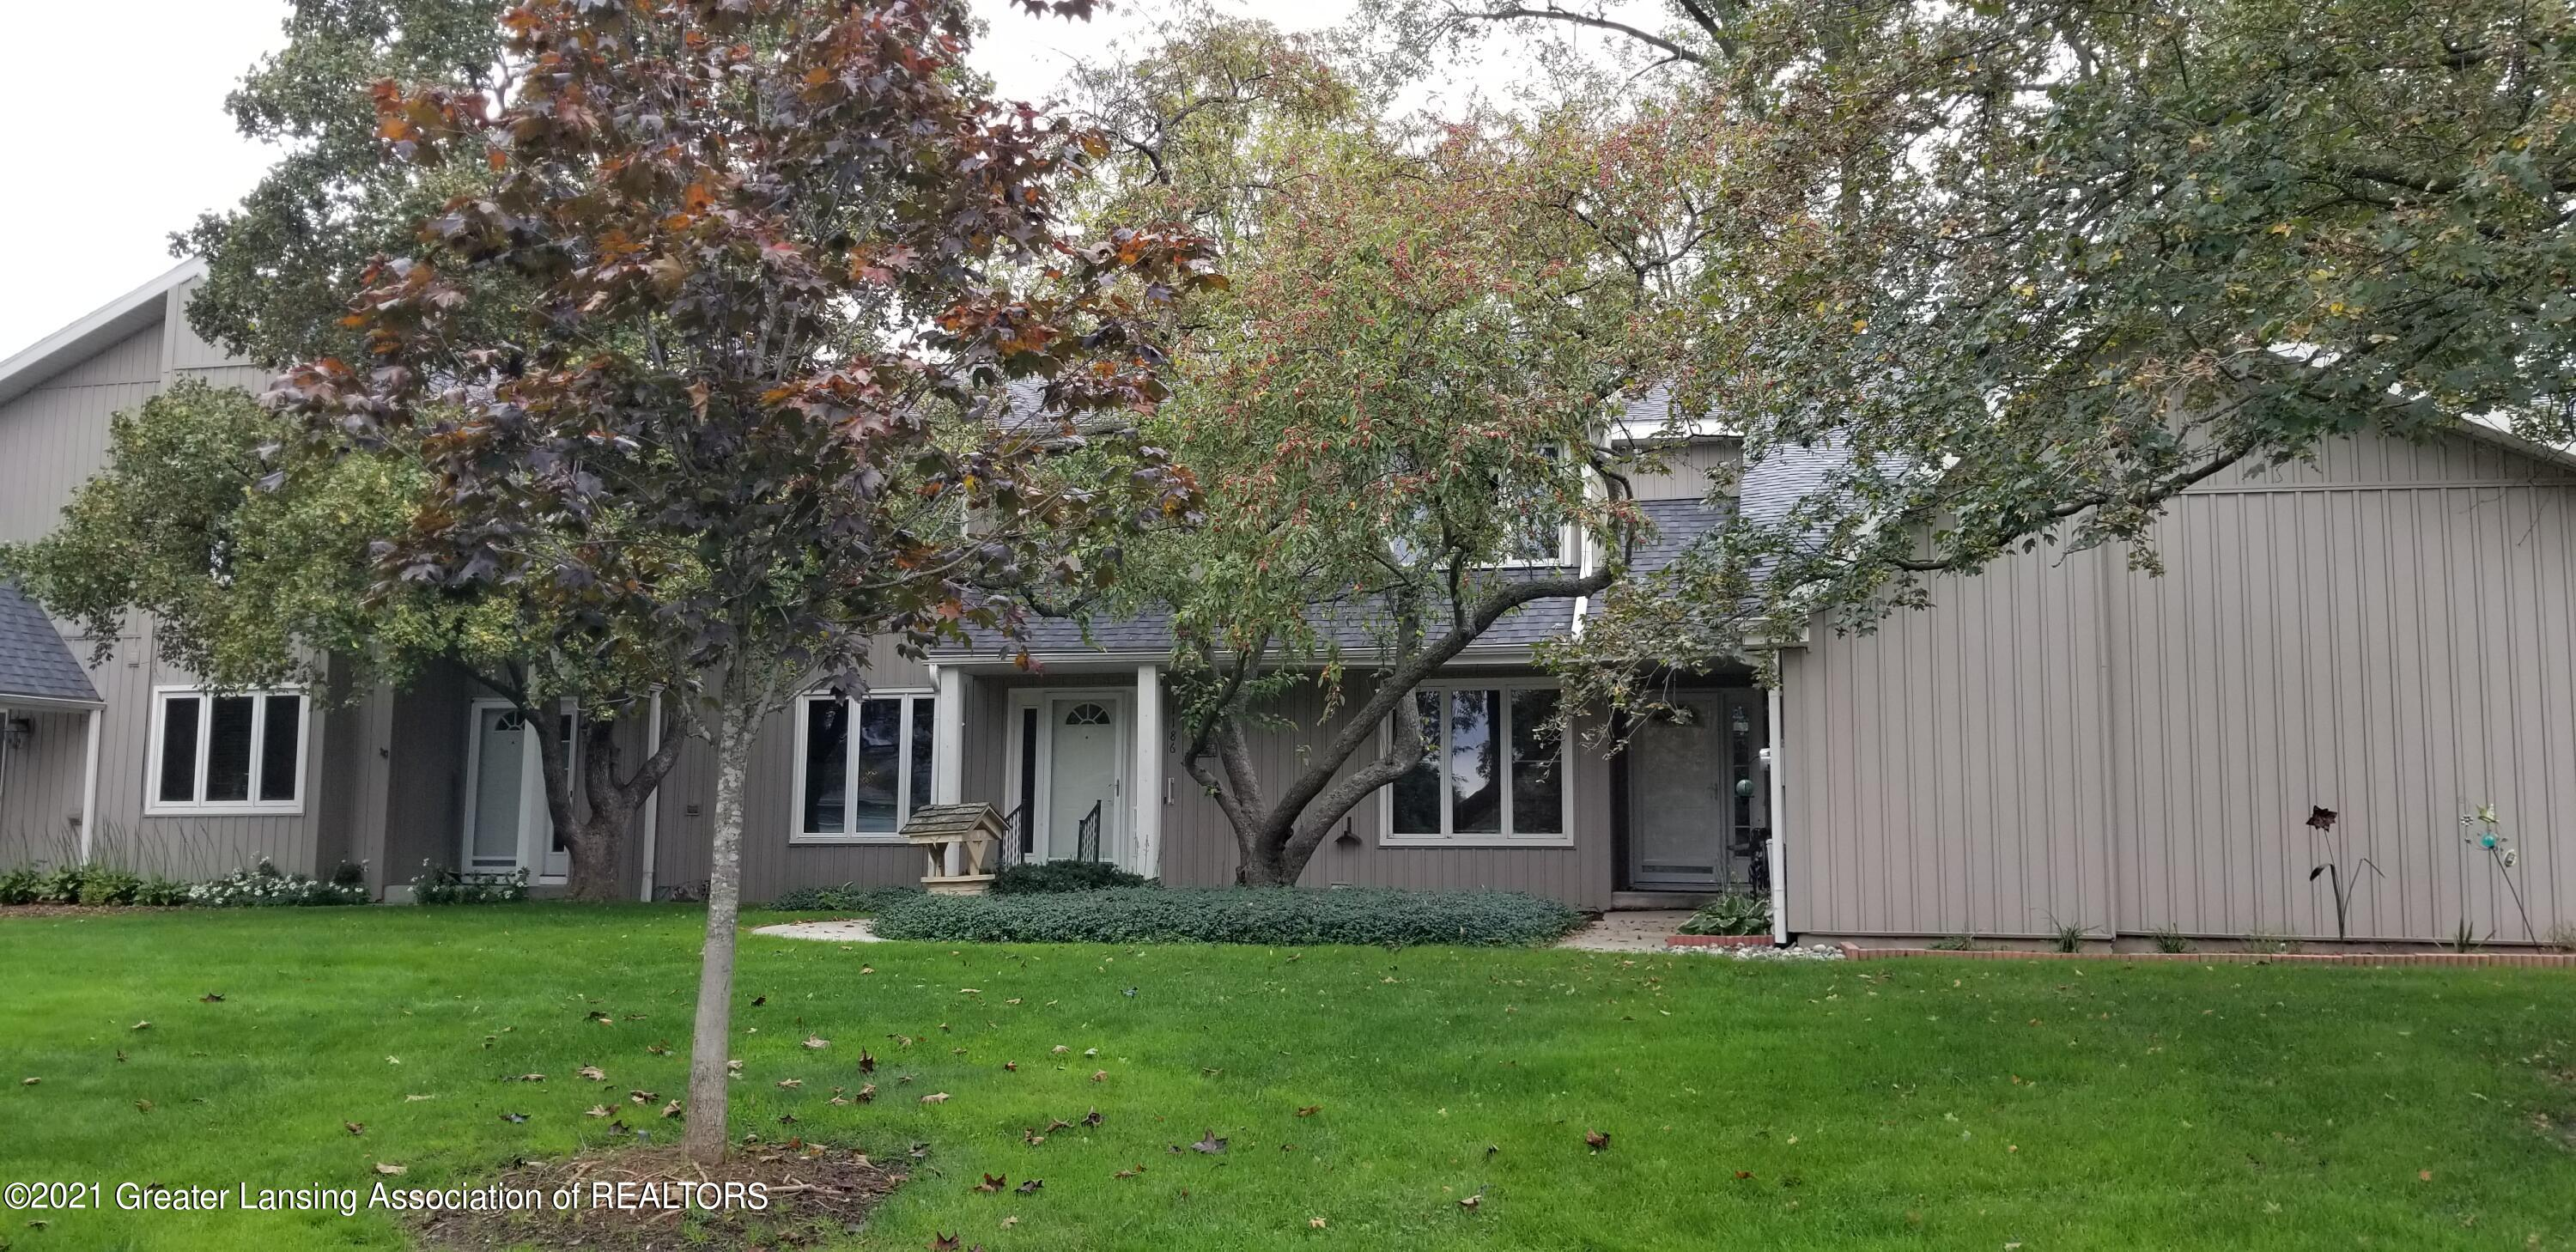 1186 Chartwell Carriage Way N - 20211015_160025 - 1